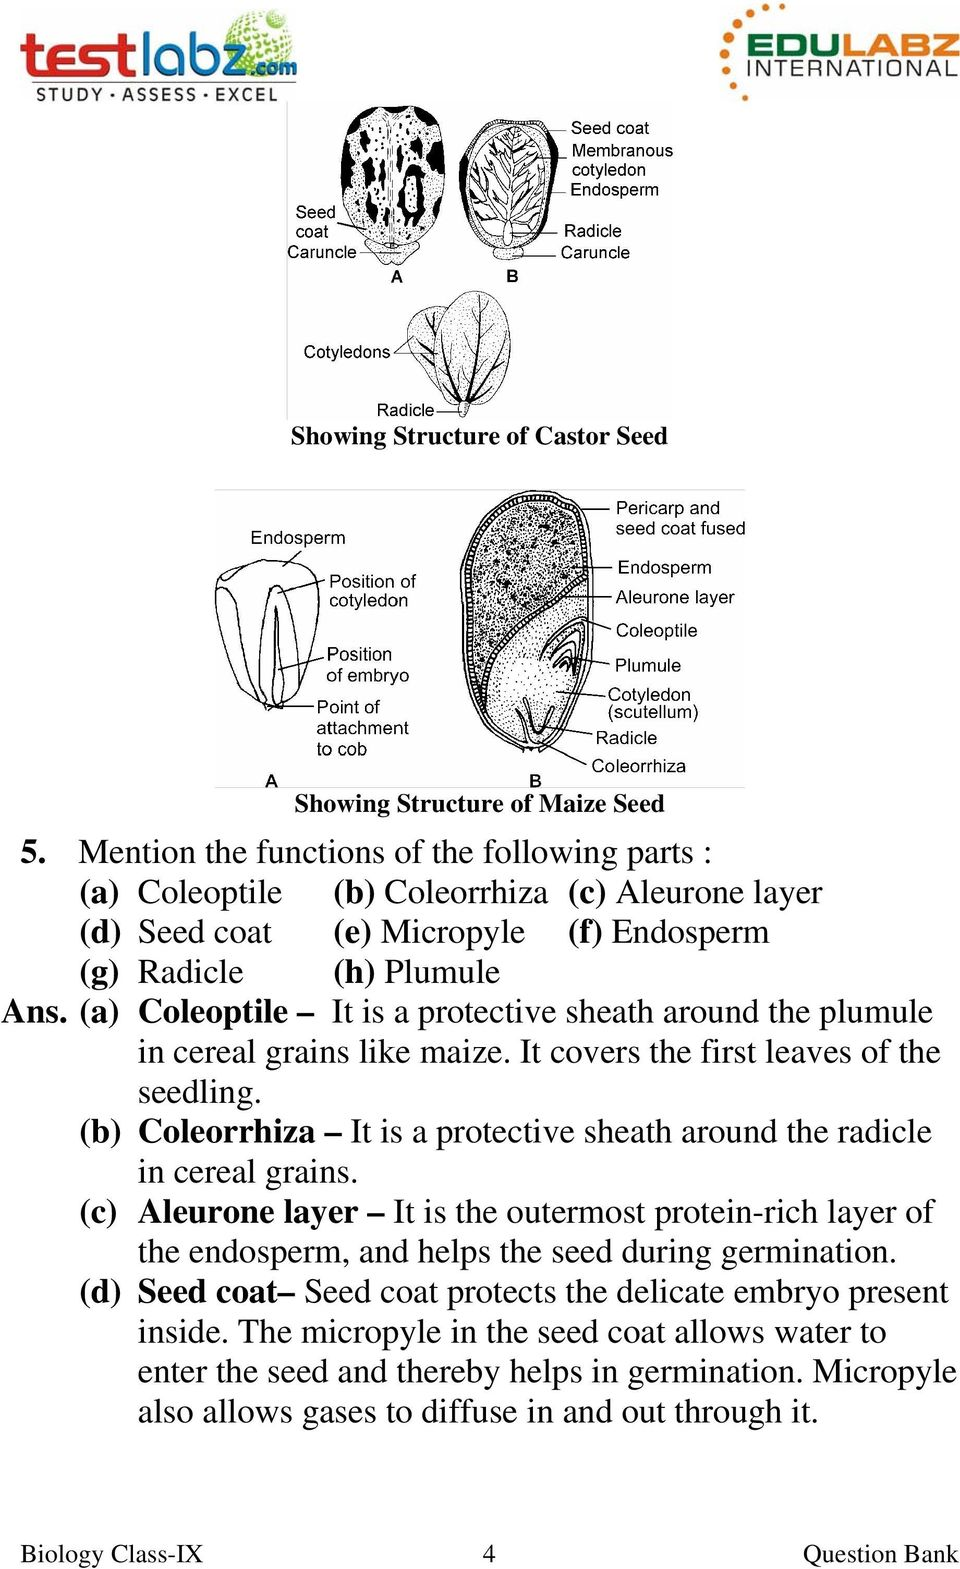 (a) Coleoptile It is a protective sheath around the plumule in cereal grains like maize. It covers the first leaves of the seedling.